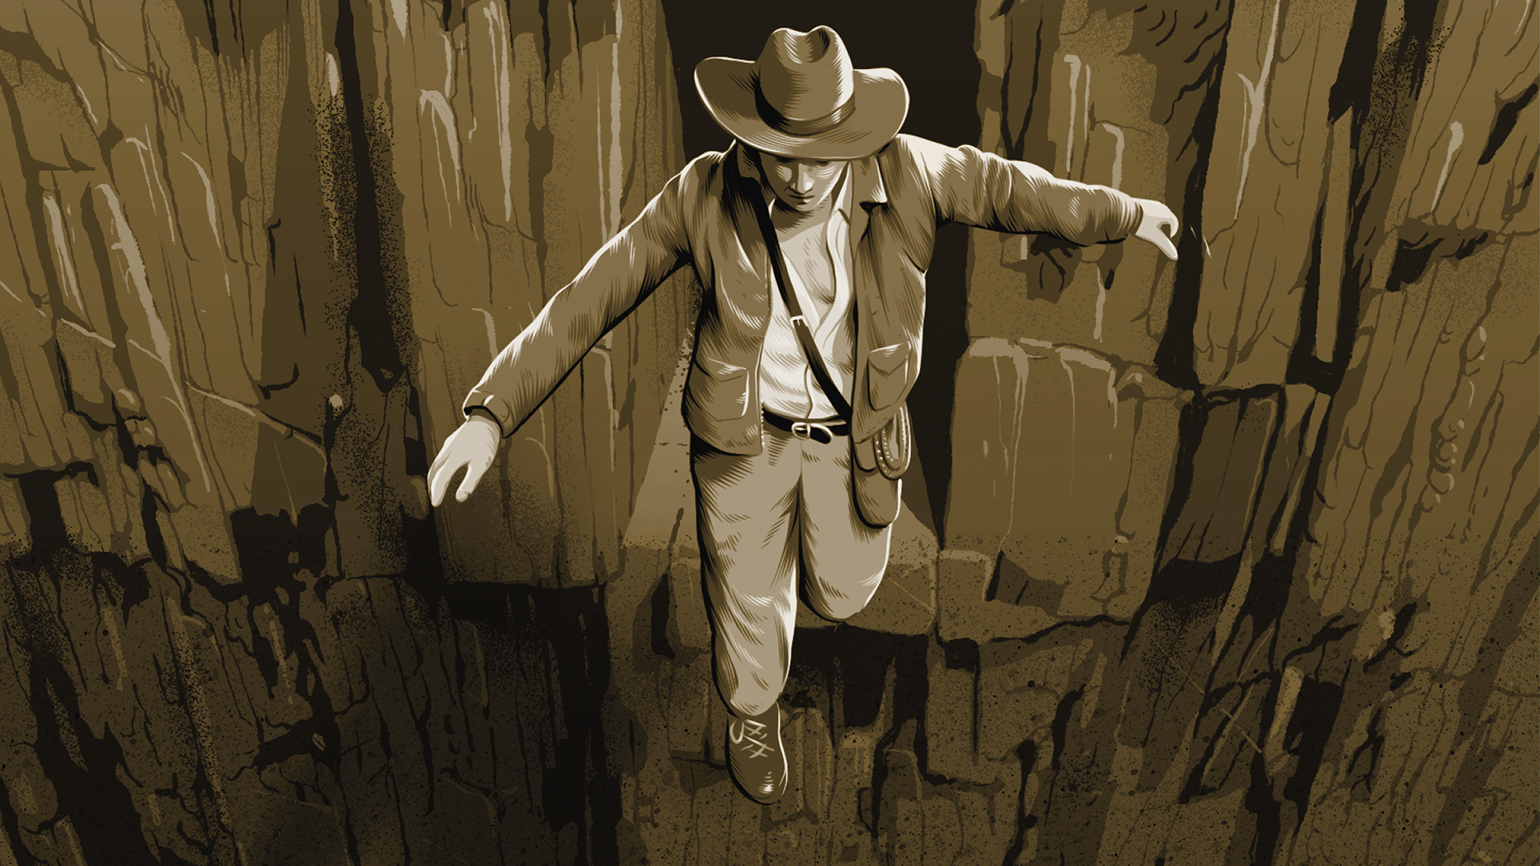 An artist's rendering of Indiana Jones gazing down from the edge of a cliff